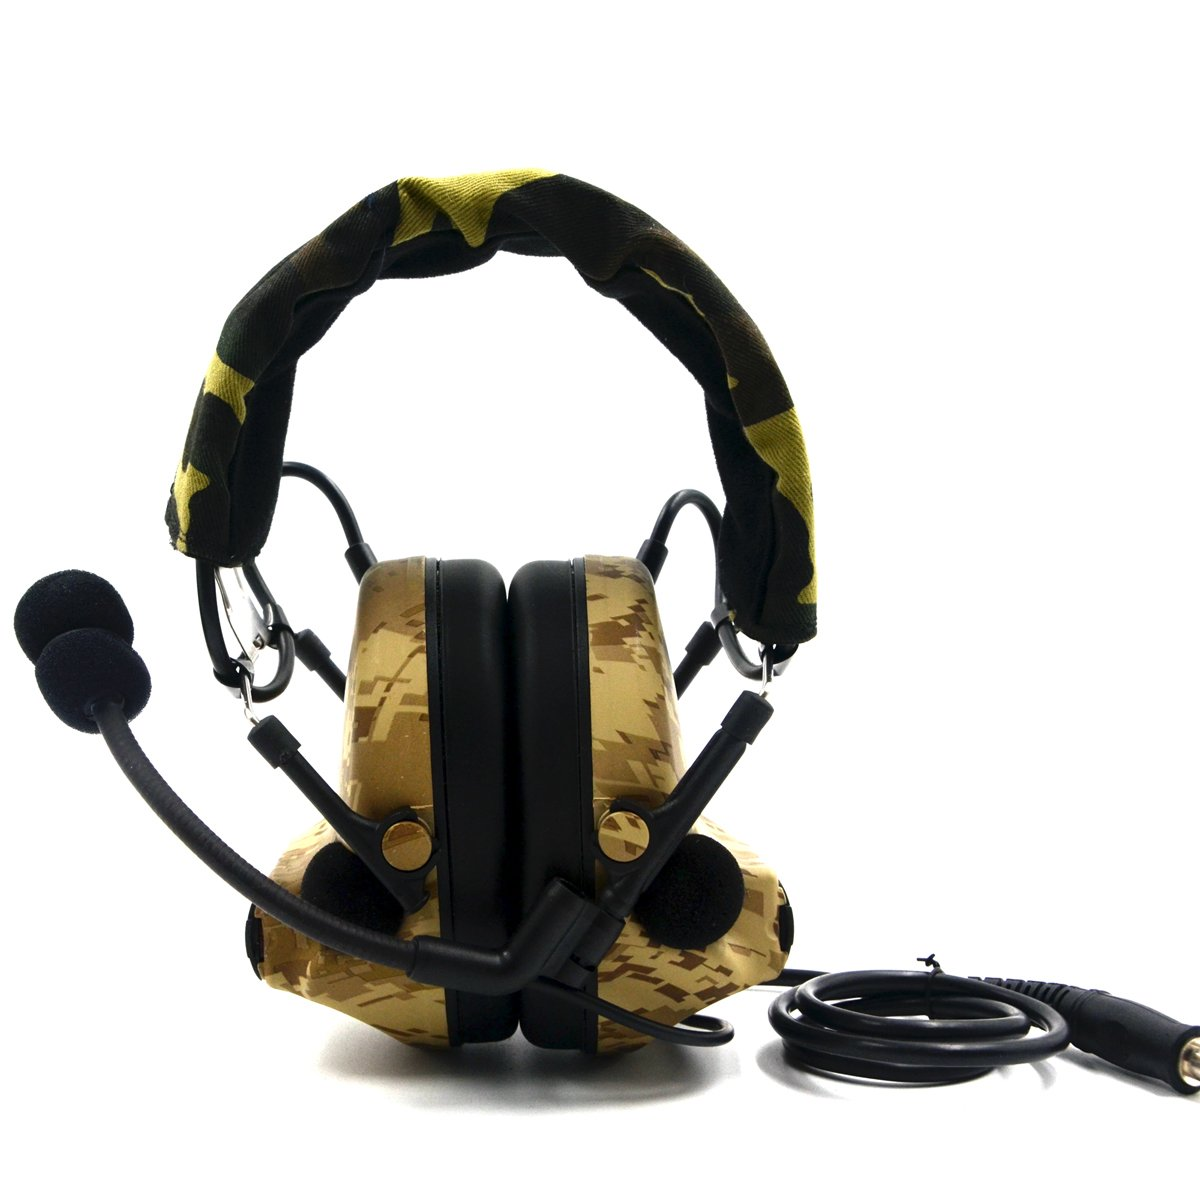 Electronic Earmuff Sport Hearing Protector for Hunting & Shooting, Sand Color by Dolphin (Image #1)